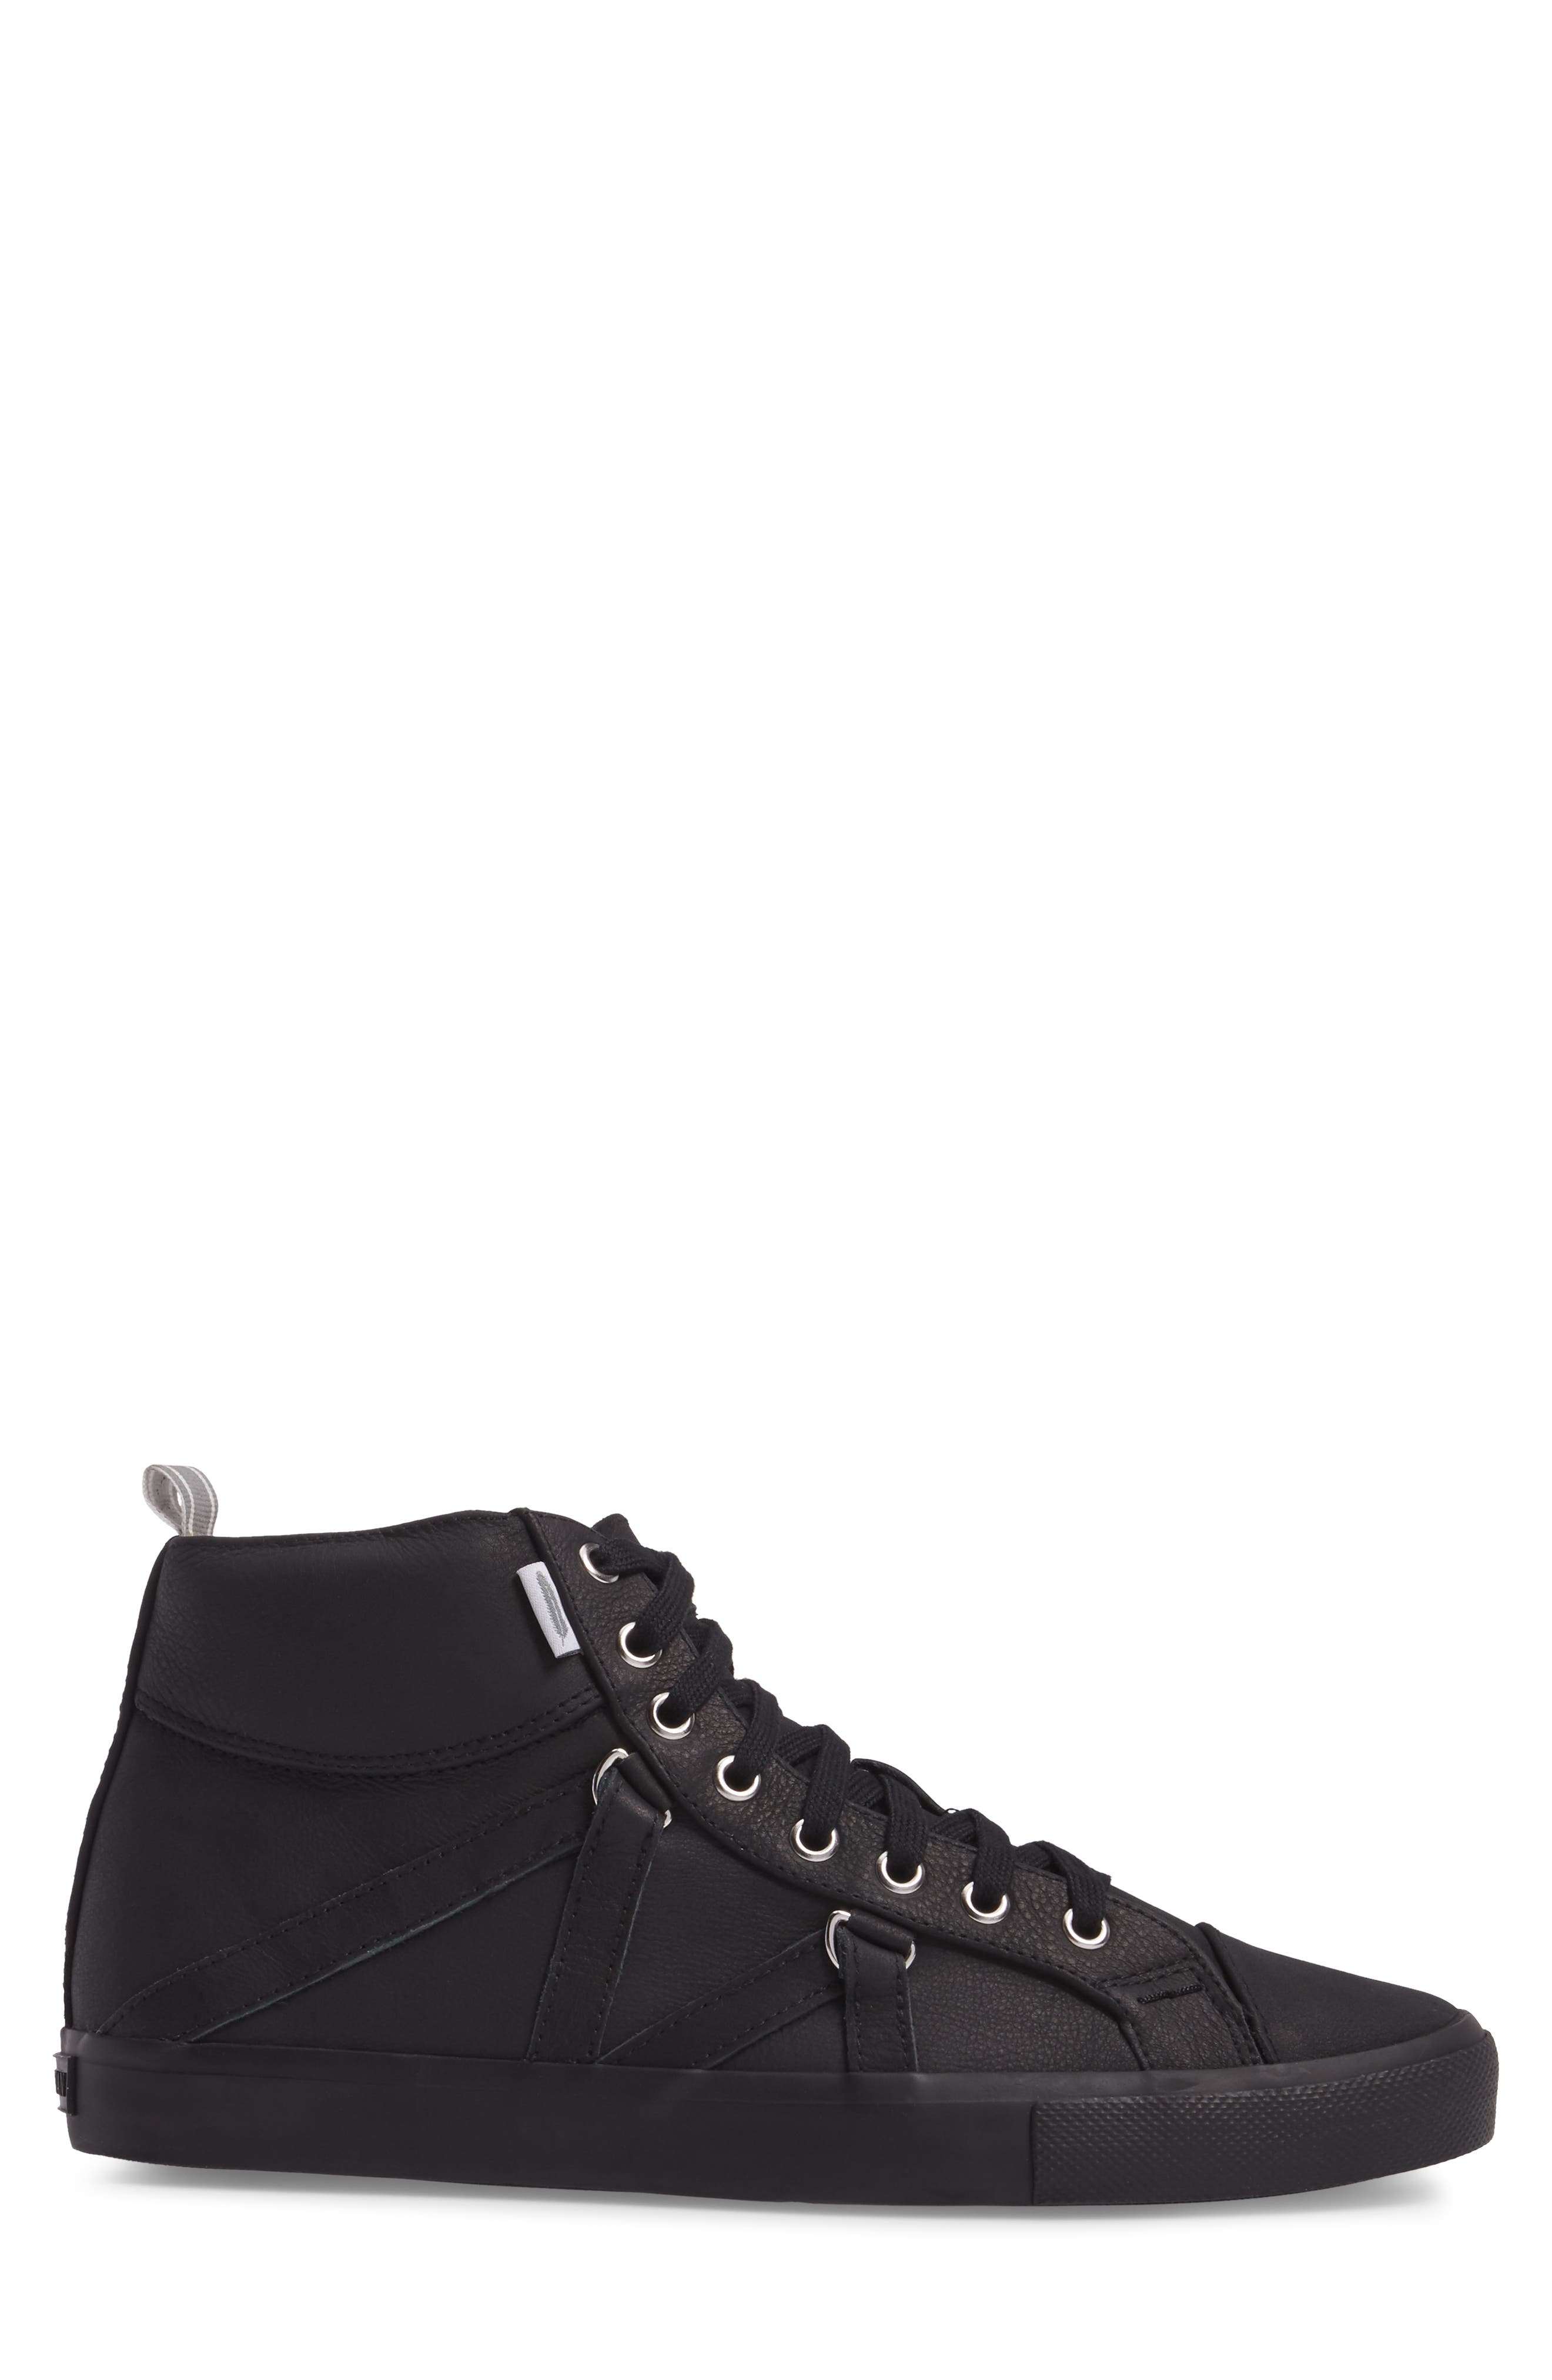 Signature High Top Sneaker,                             Alternate thumbnail 3, color,                             NERO LEATHER